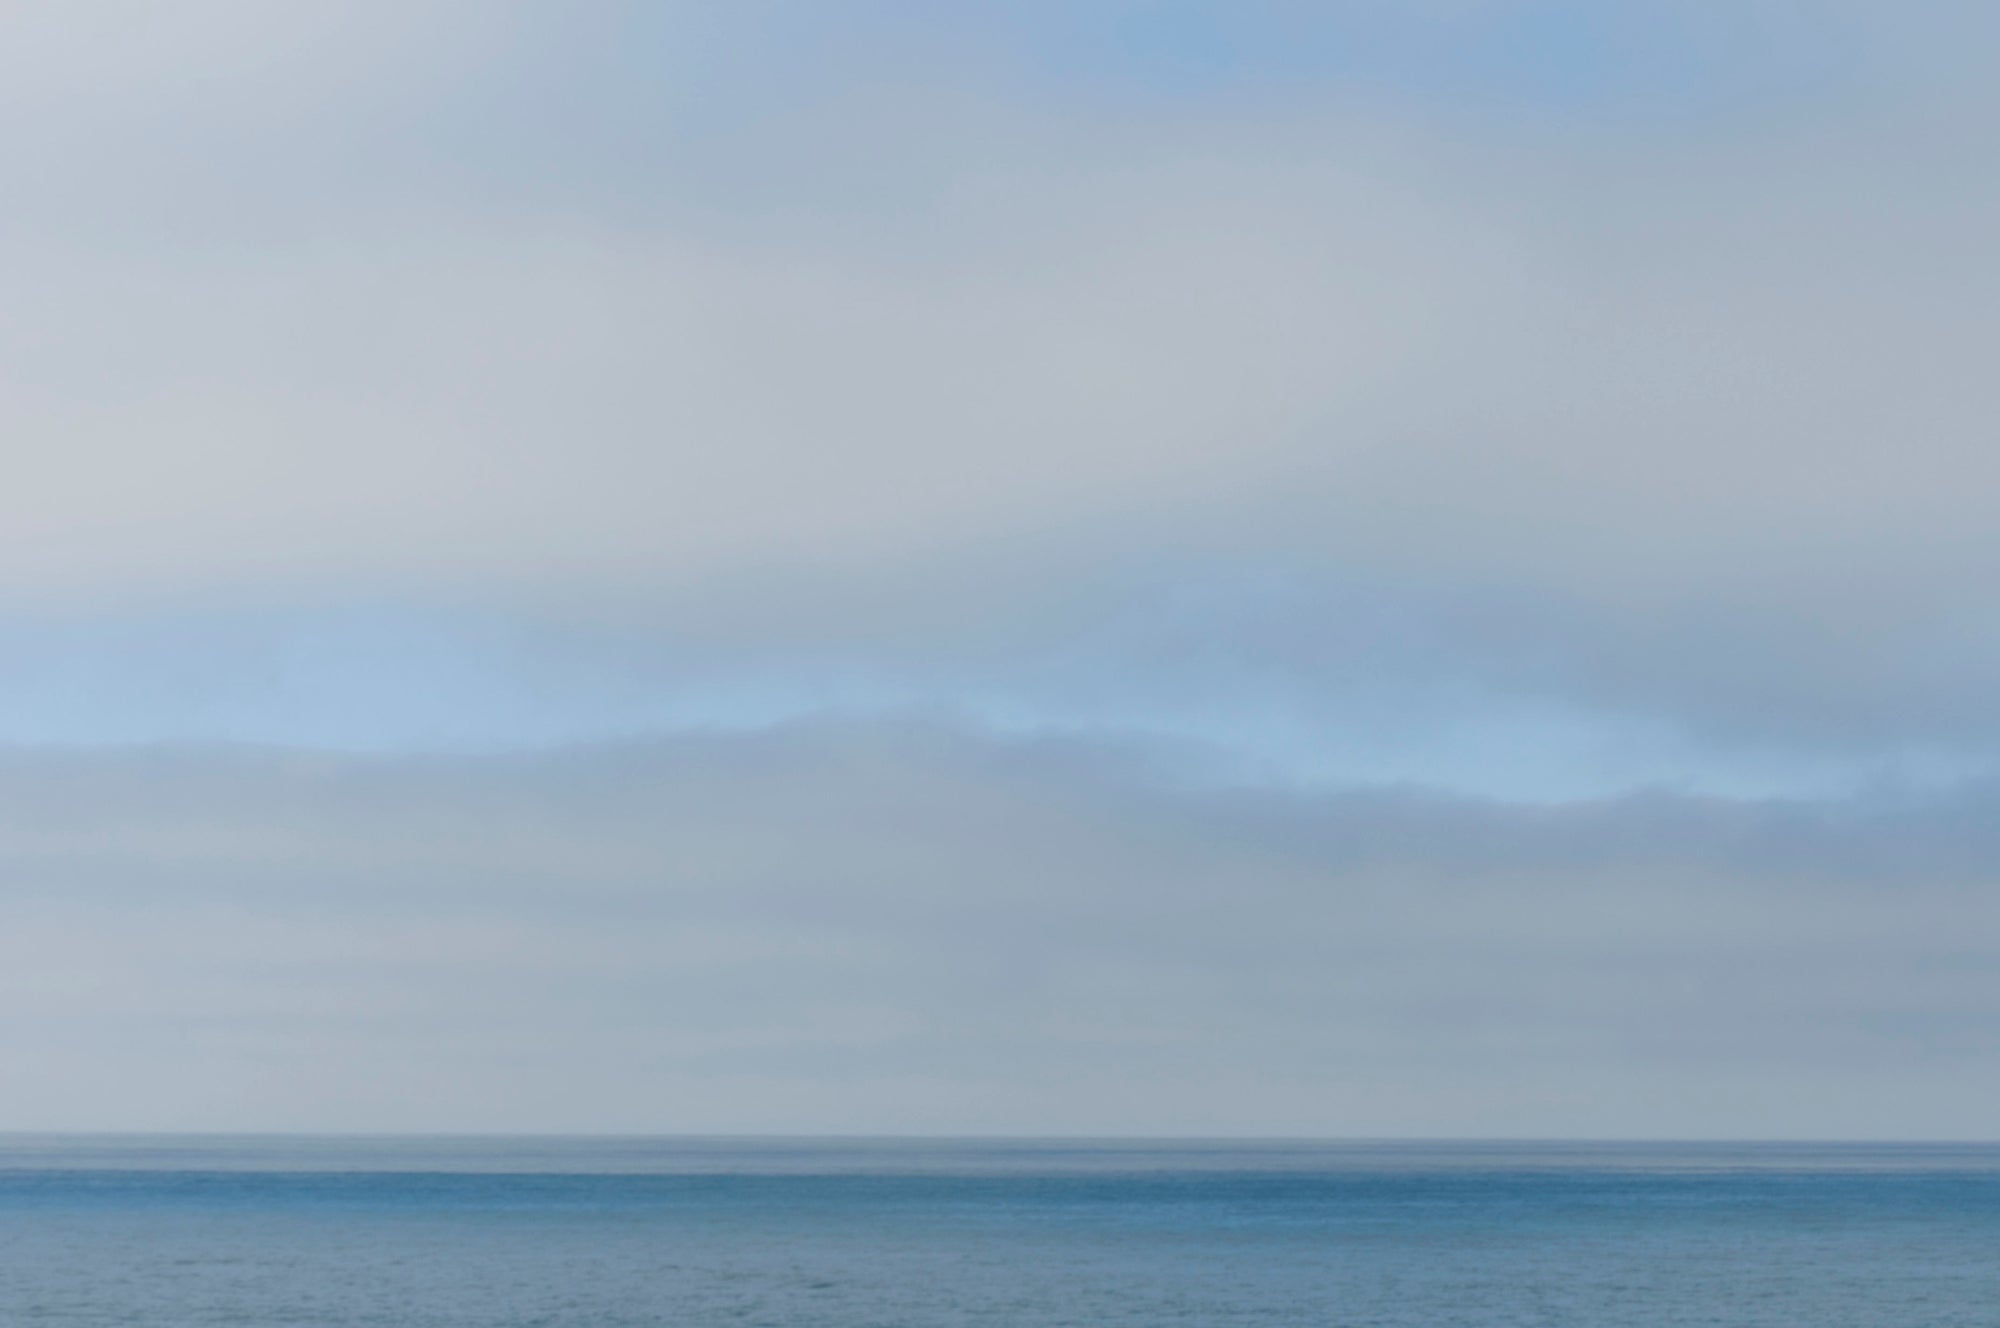 <I>Pacific Blues</I><br>Mendocino, California, 2014<br><br>GC0389